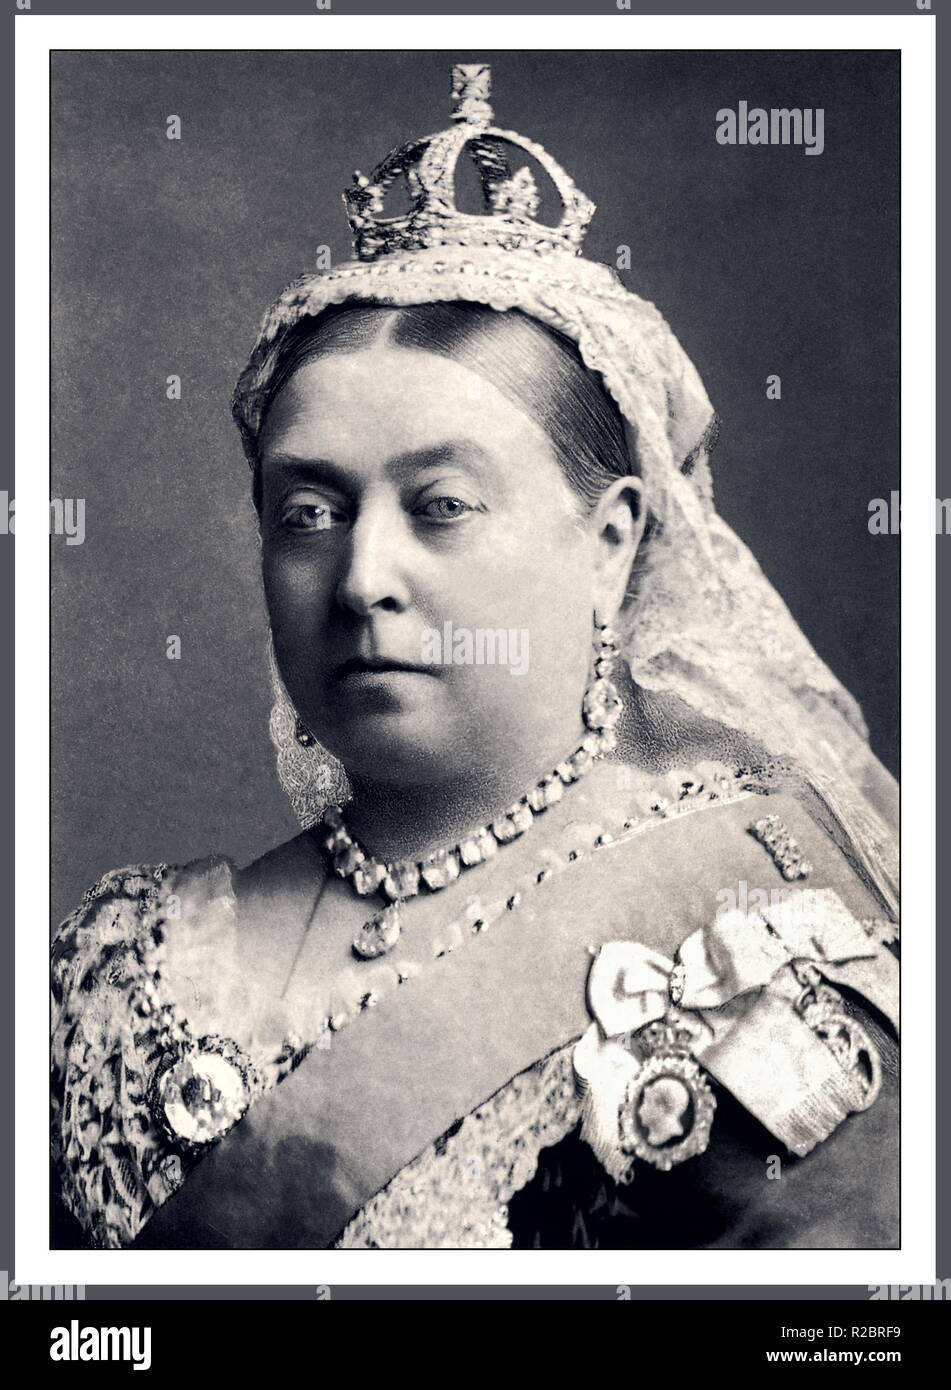 Queen Victoria 1887 British Monarch formal studio portrait wearing the Coronation Necklace and Earrings, small-Diamond Crown and Koh-i-Noor brooch The Small Diamond Crown of Queen Victoria is a miniature imperial and state crown made at the request of Queen Victoria in 1870 to wear over her widow's cap following the death of her husband, Prince Albert. It was perhaps the crown most associated with the Queen and is one of the Crown Jewels on public display in the Jewel House at the Tower of London. Photographer/Bassano - Stock Image